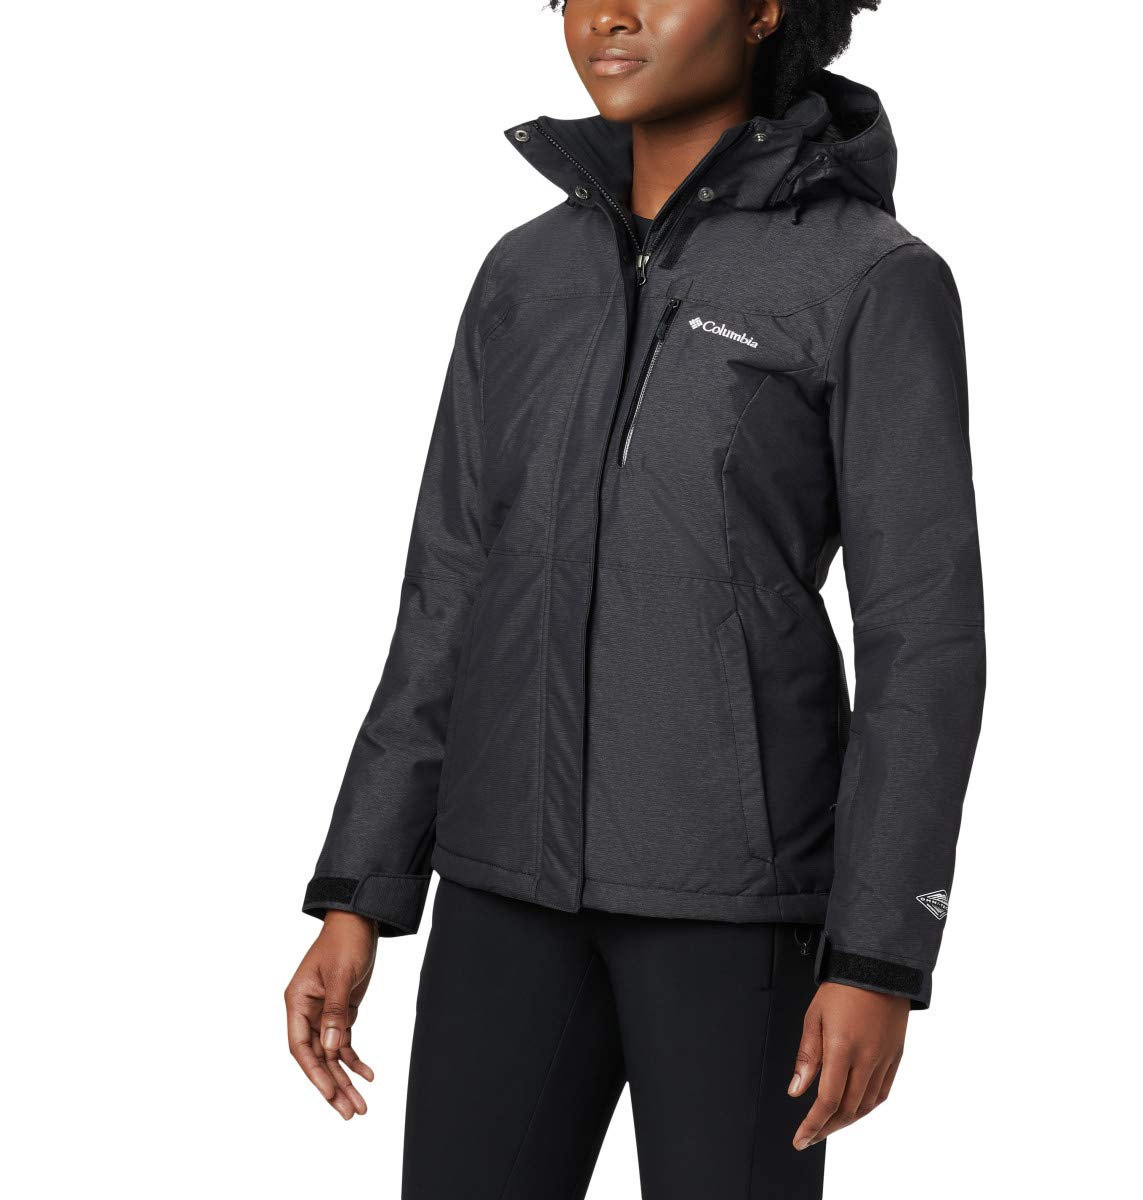 Columbia Women's Alpine Action Oh Jacket, Black, Medium by Columbia